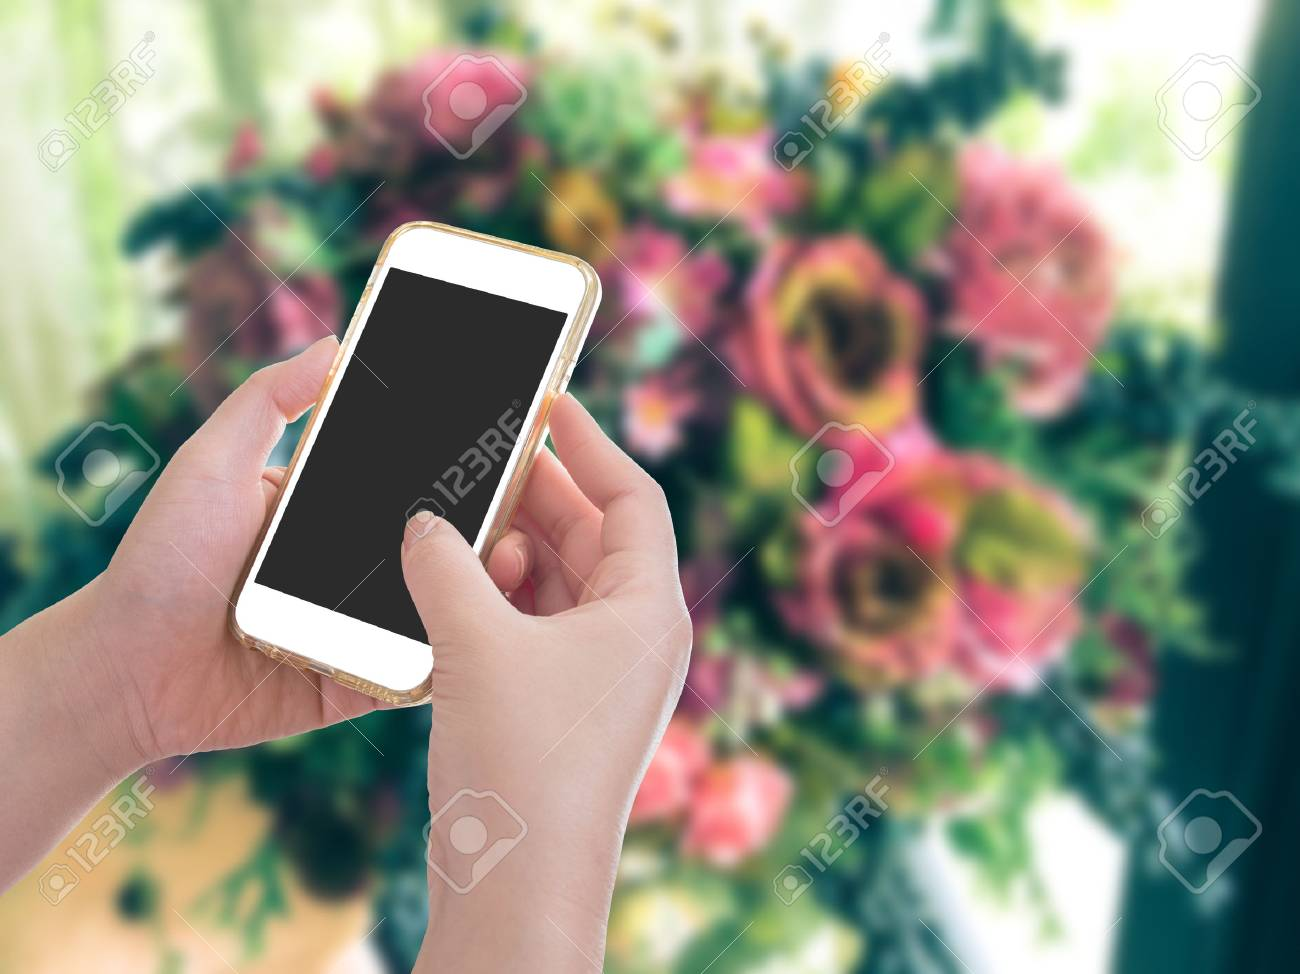 Hand holding mobile phone with flower bouquet background stock photo hand holding mobile phone with flower bouquet background stock photo 56552797 izmirmasajfo